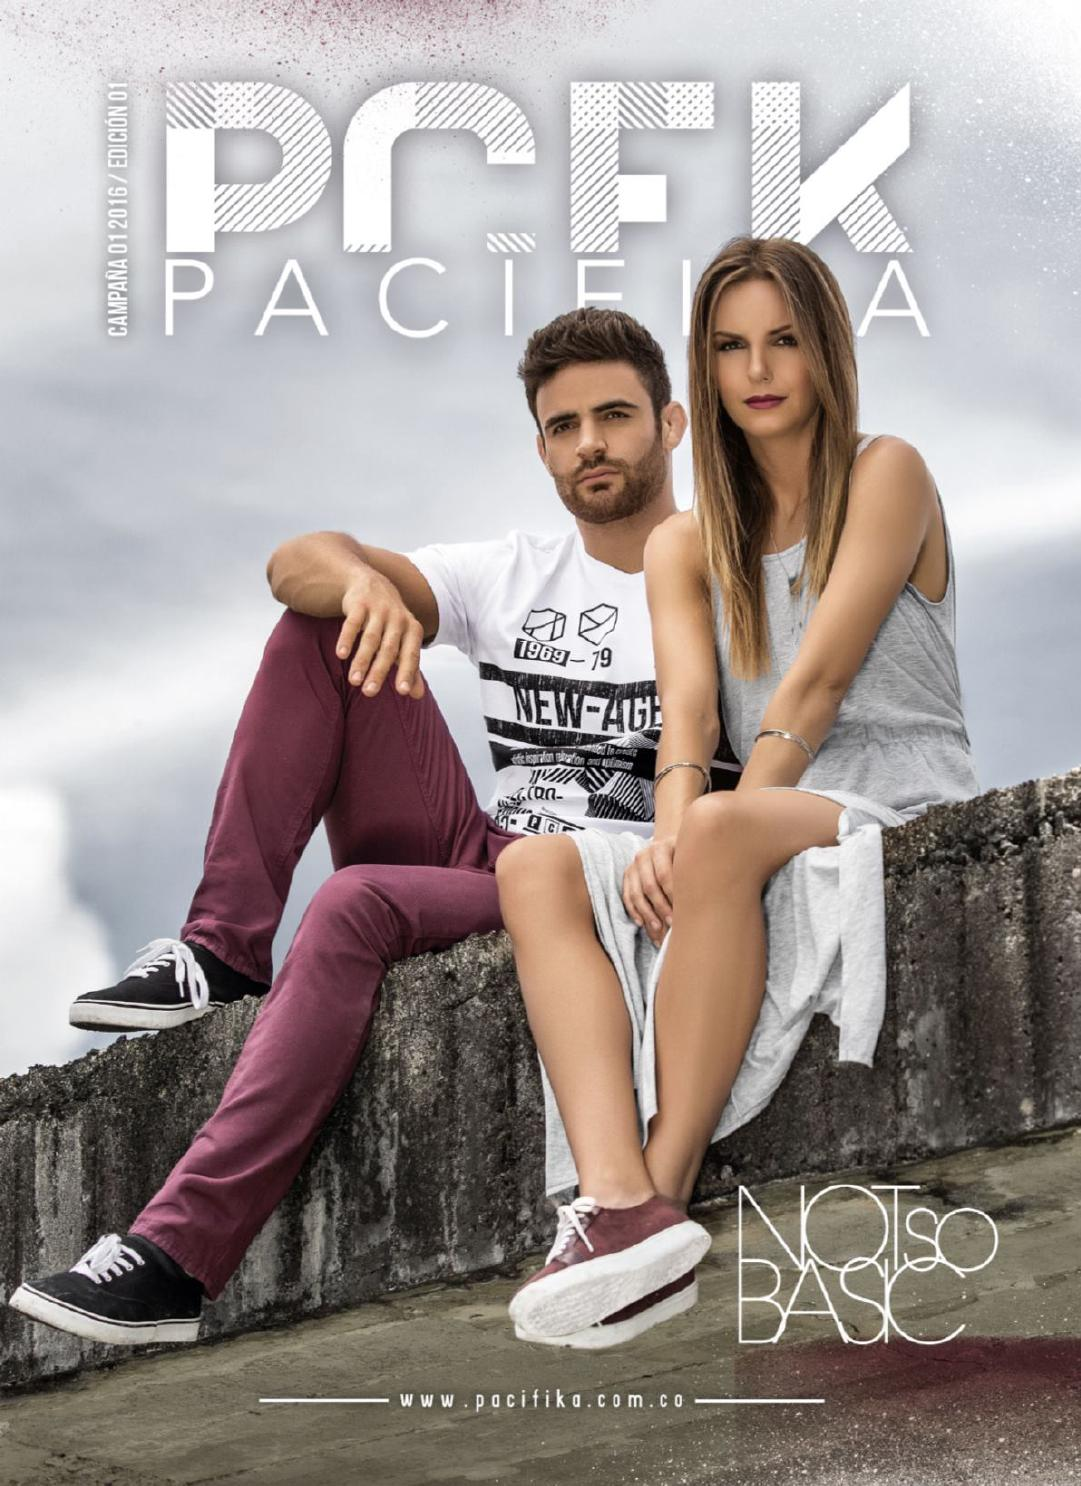 e771cb013a Pacifika by Belle Ropa y Calzado - Issuu